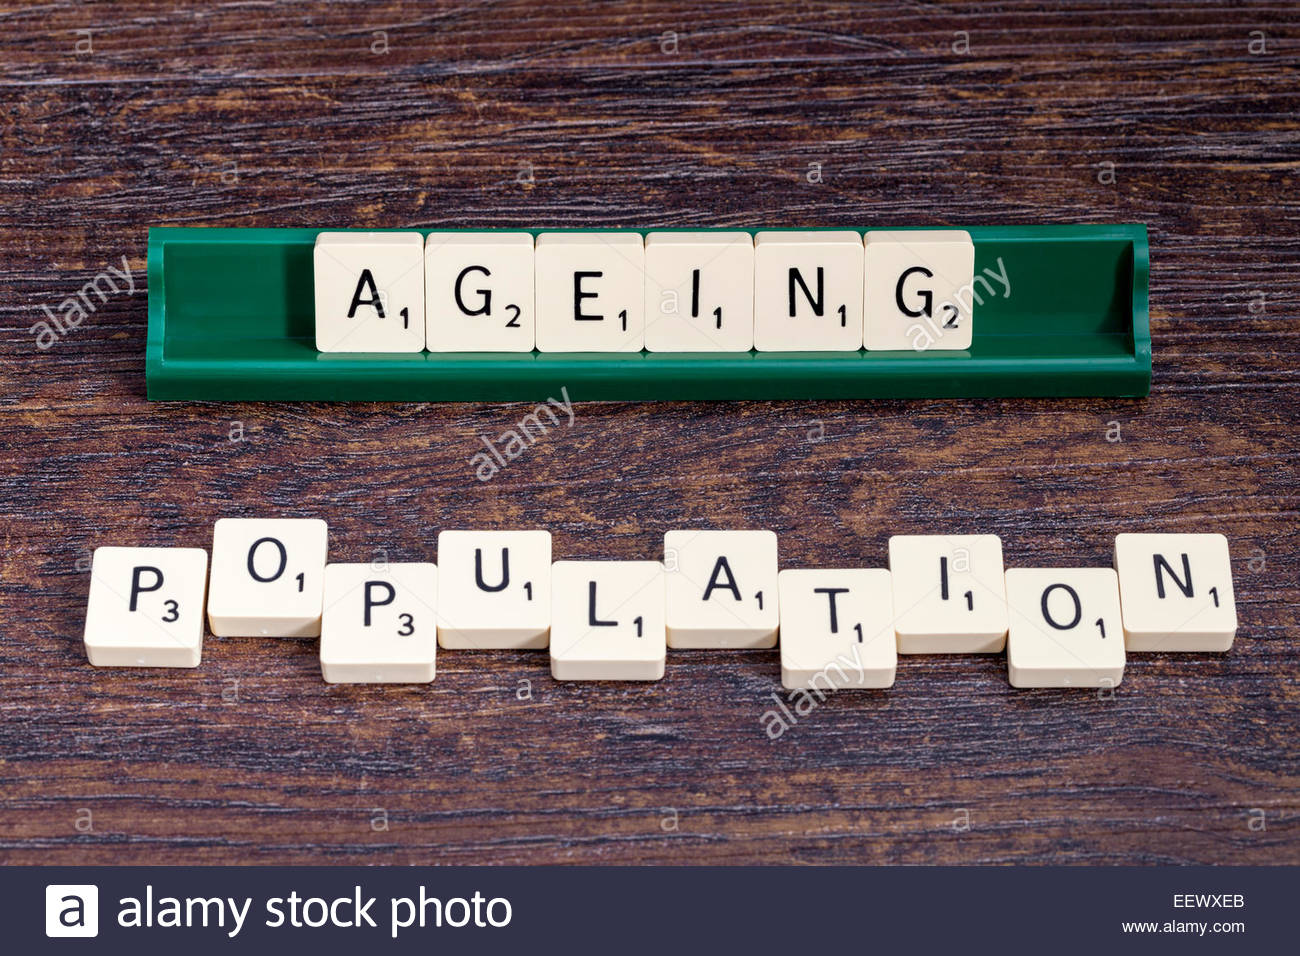 Ageing Population spelled out with scrabble letters. - Stock Image